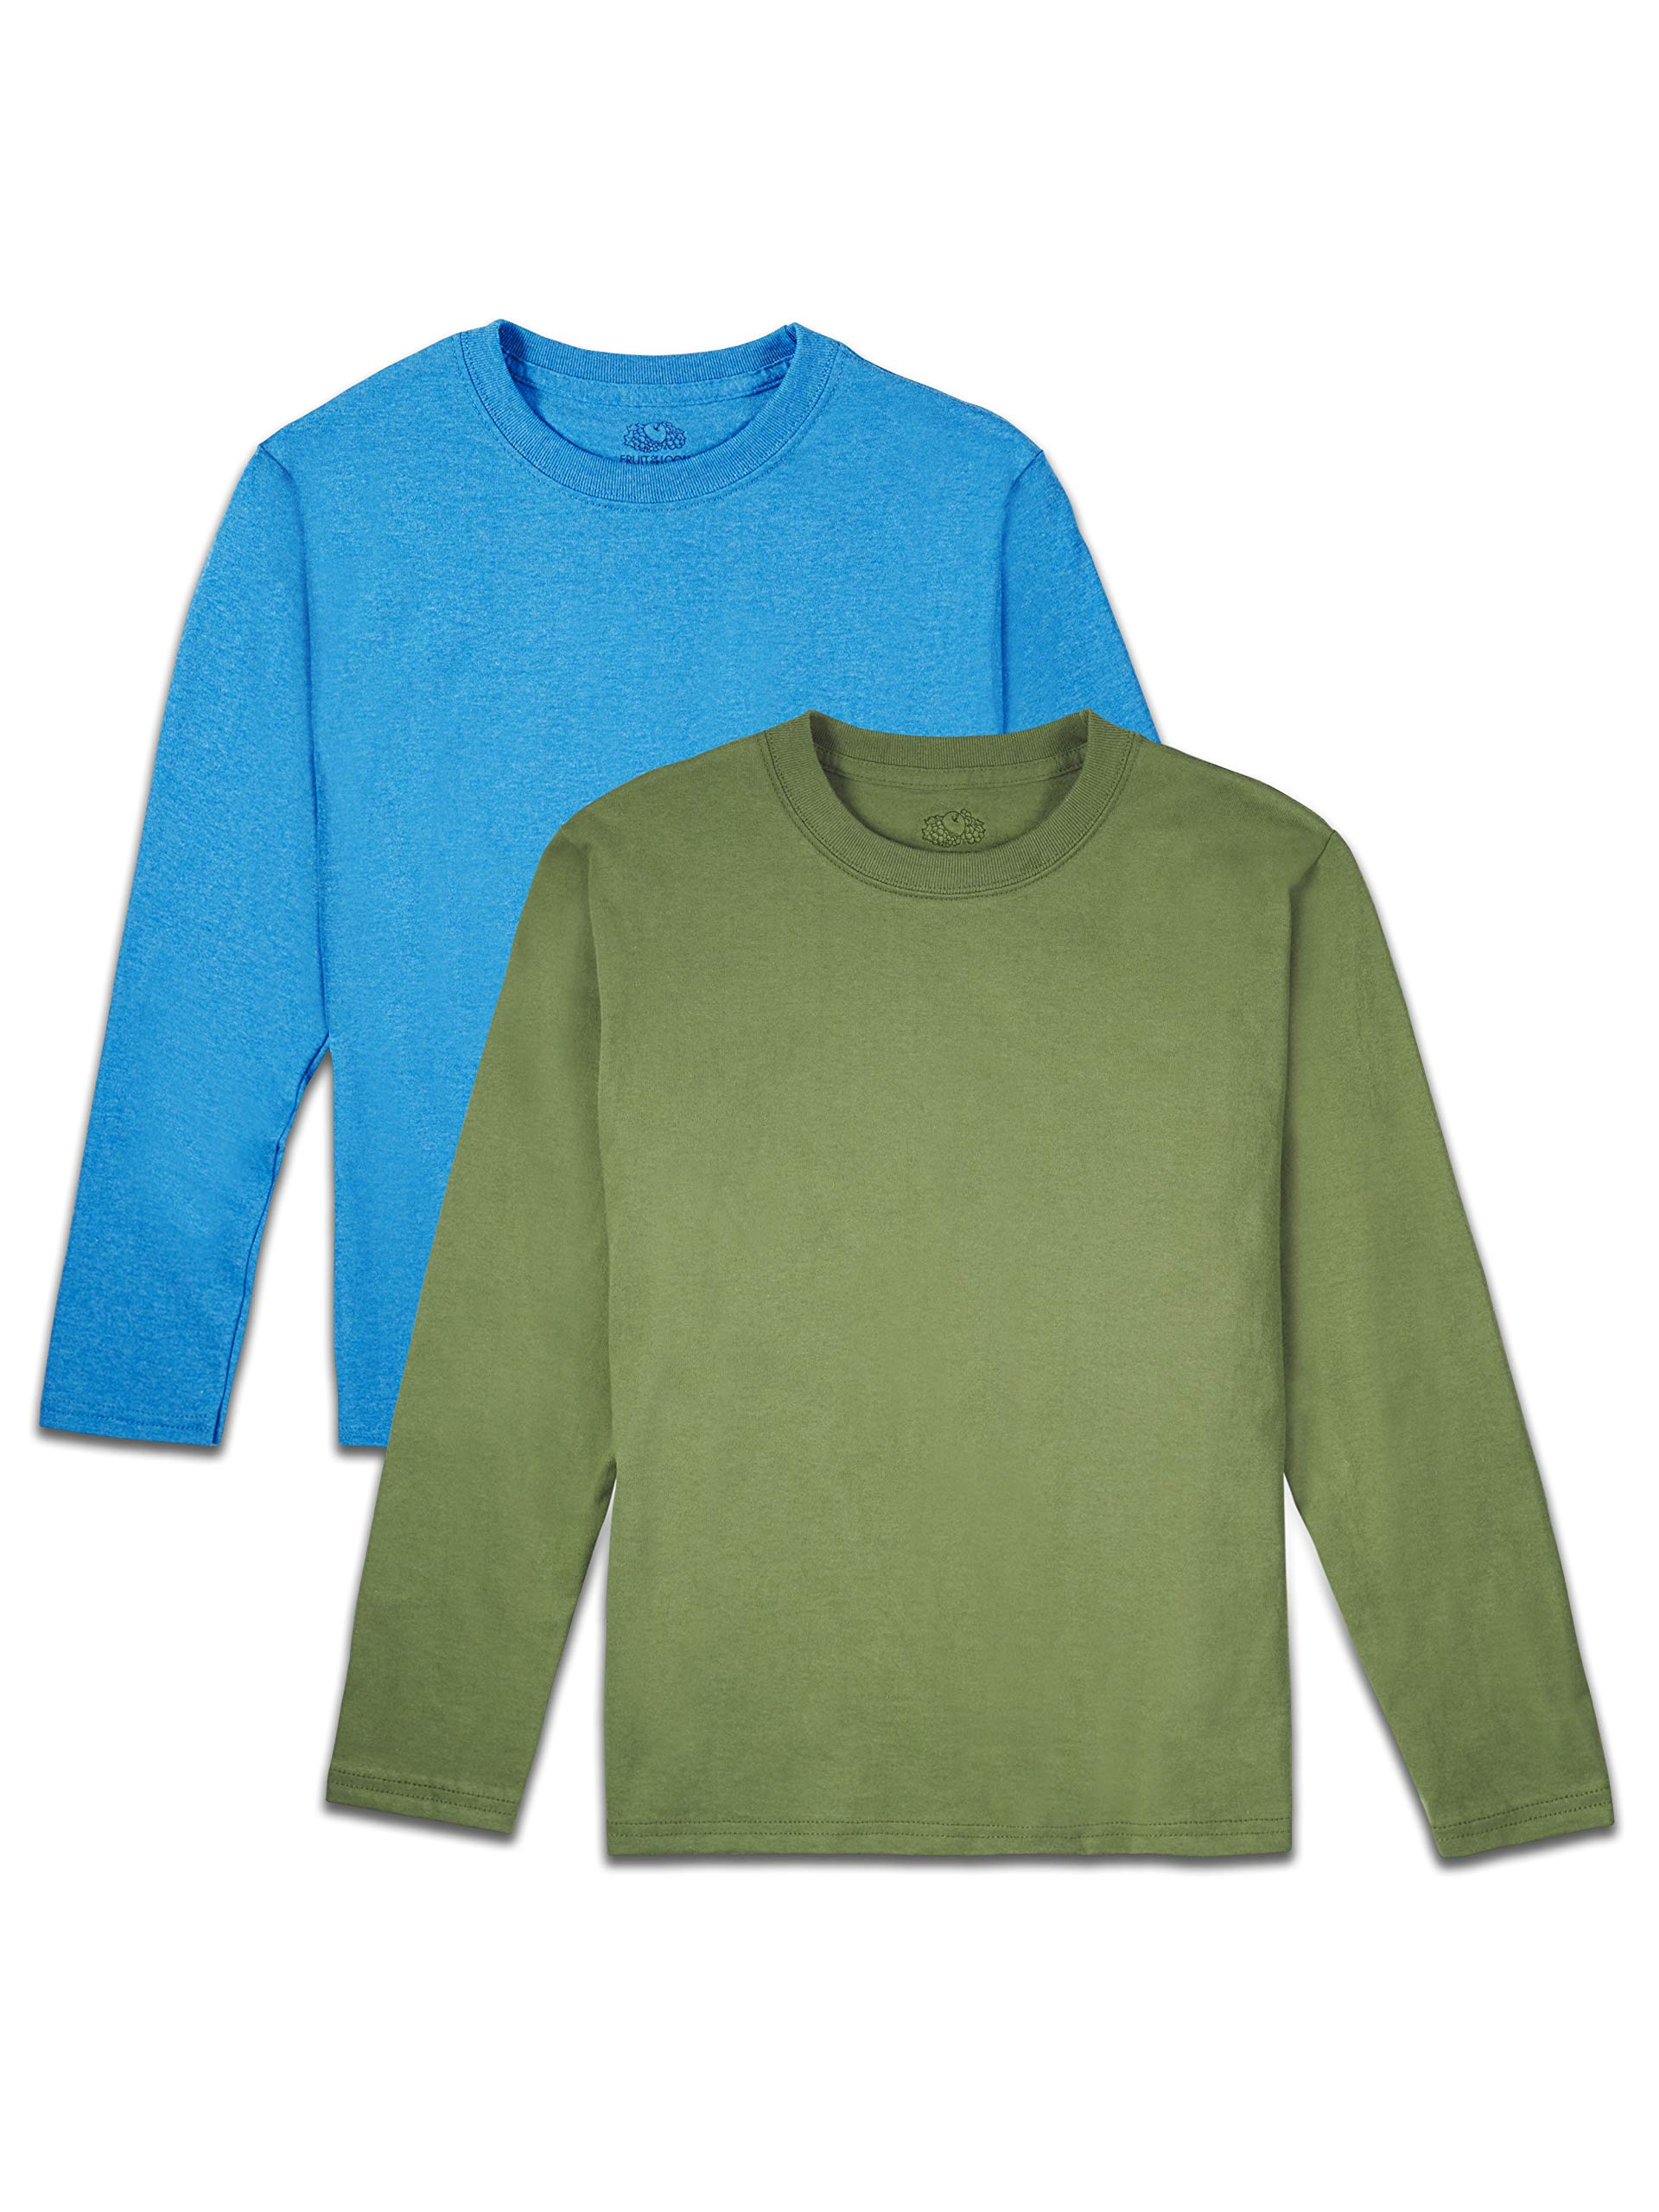 Fruit of the Loom Boys' Solid Multi-Color Soft Long Sleeve T-Shirts, 2 Pack